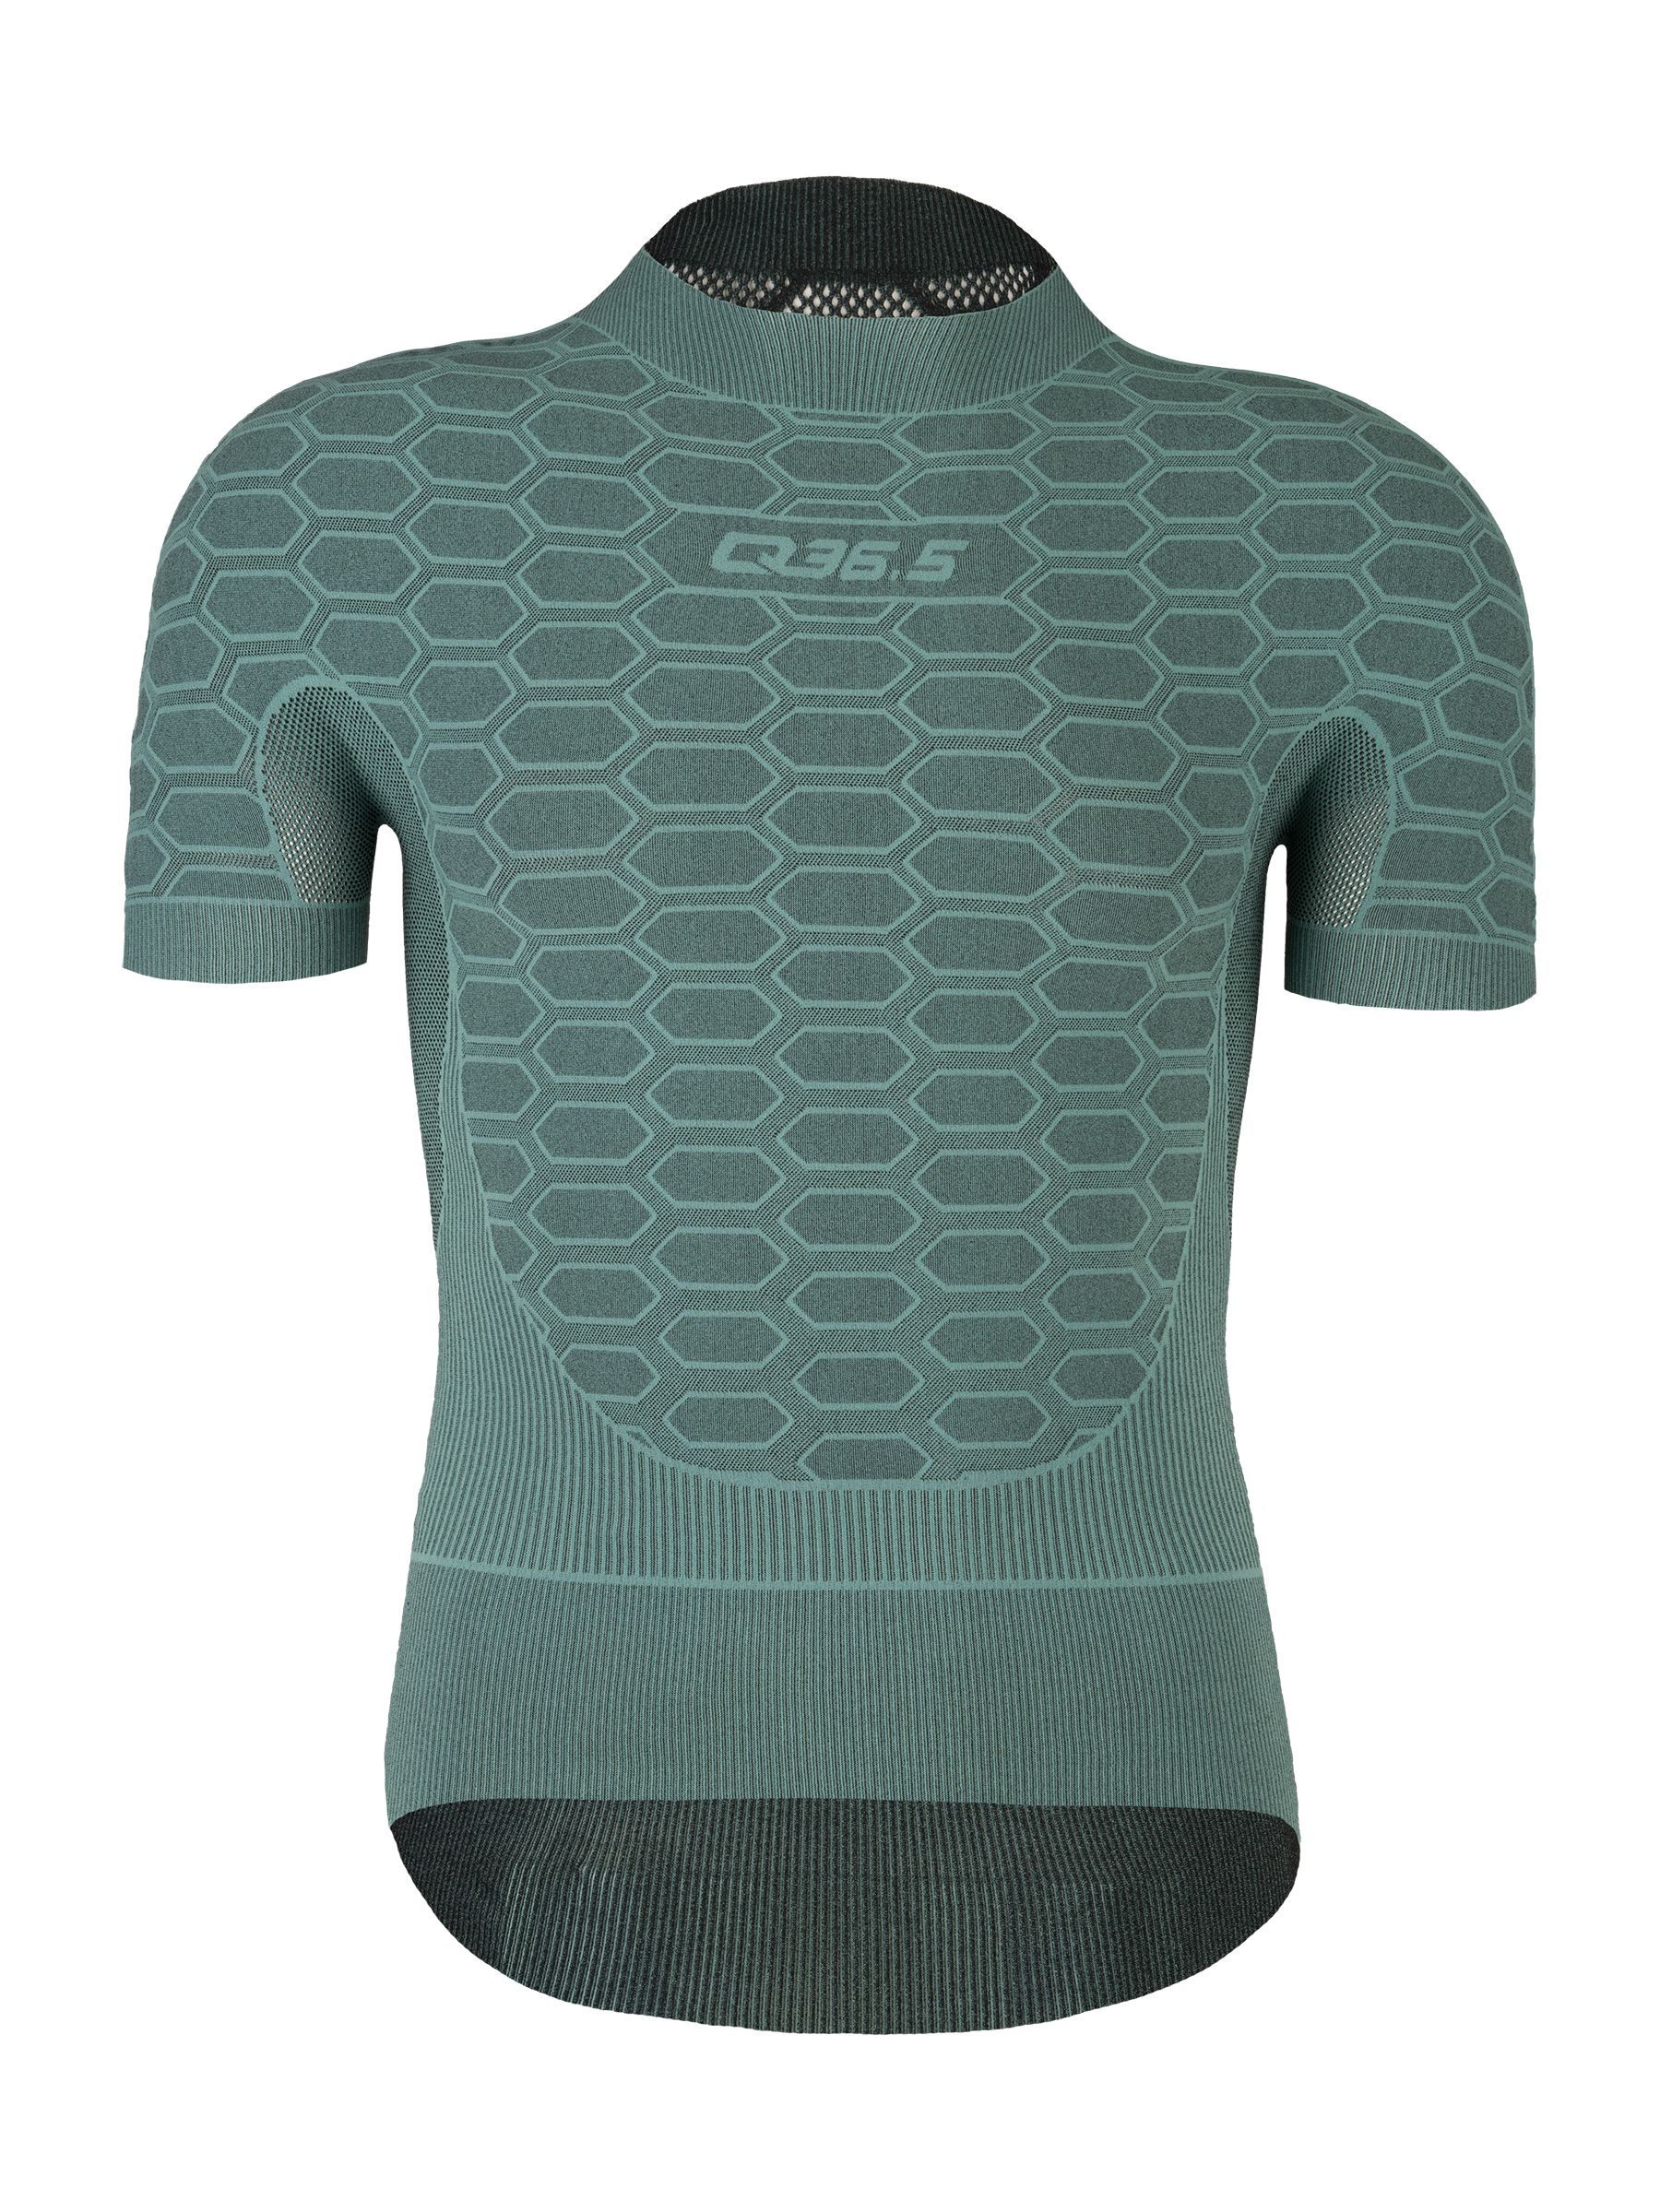 cycling-base-layer-2-olive-green-081.14